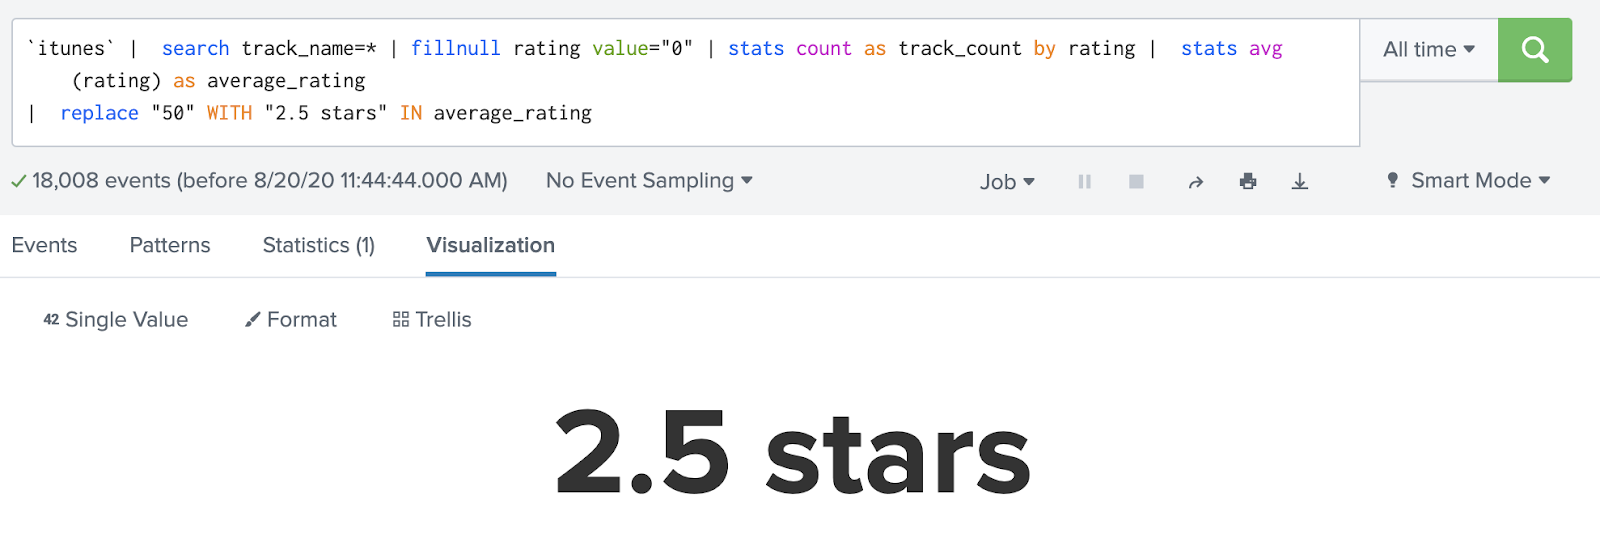 """Screenshot of splunk search and visualization showing """"2.5 stars"""". Splunk search is: `itunes` 